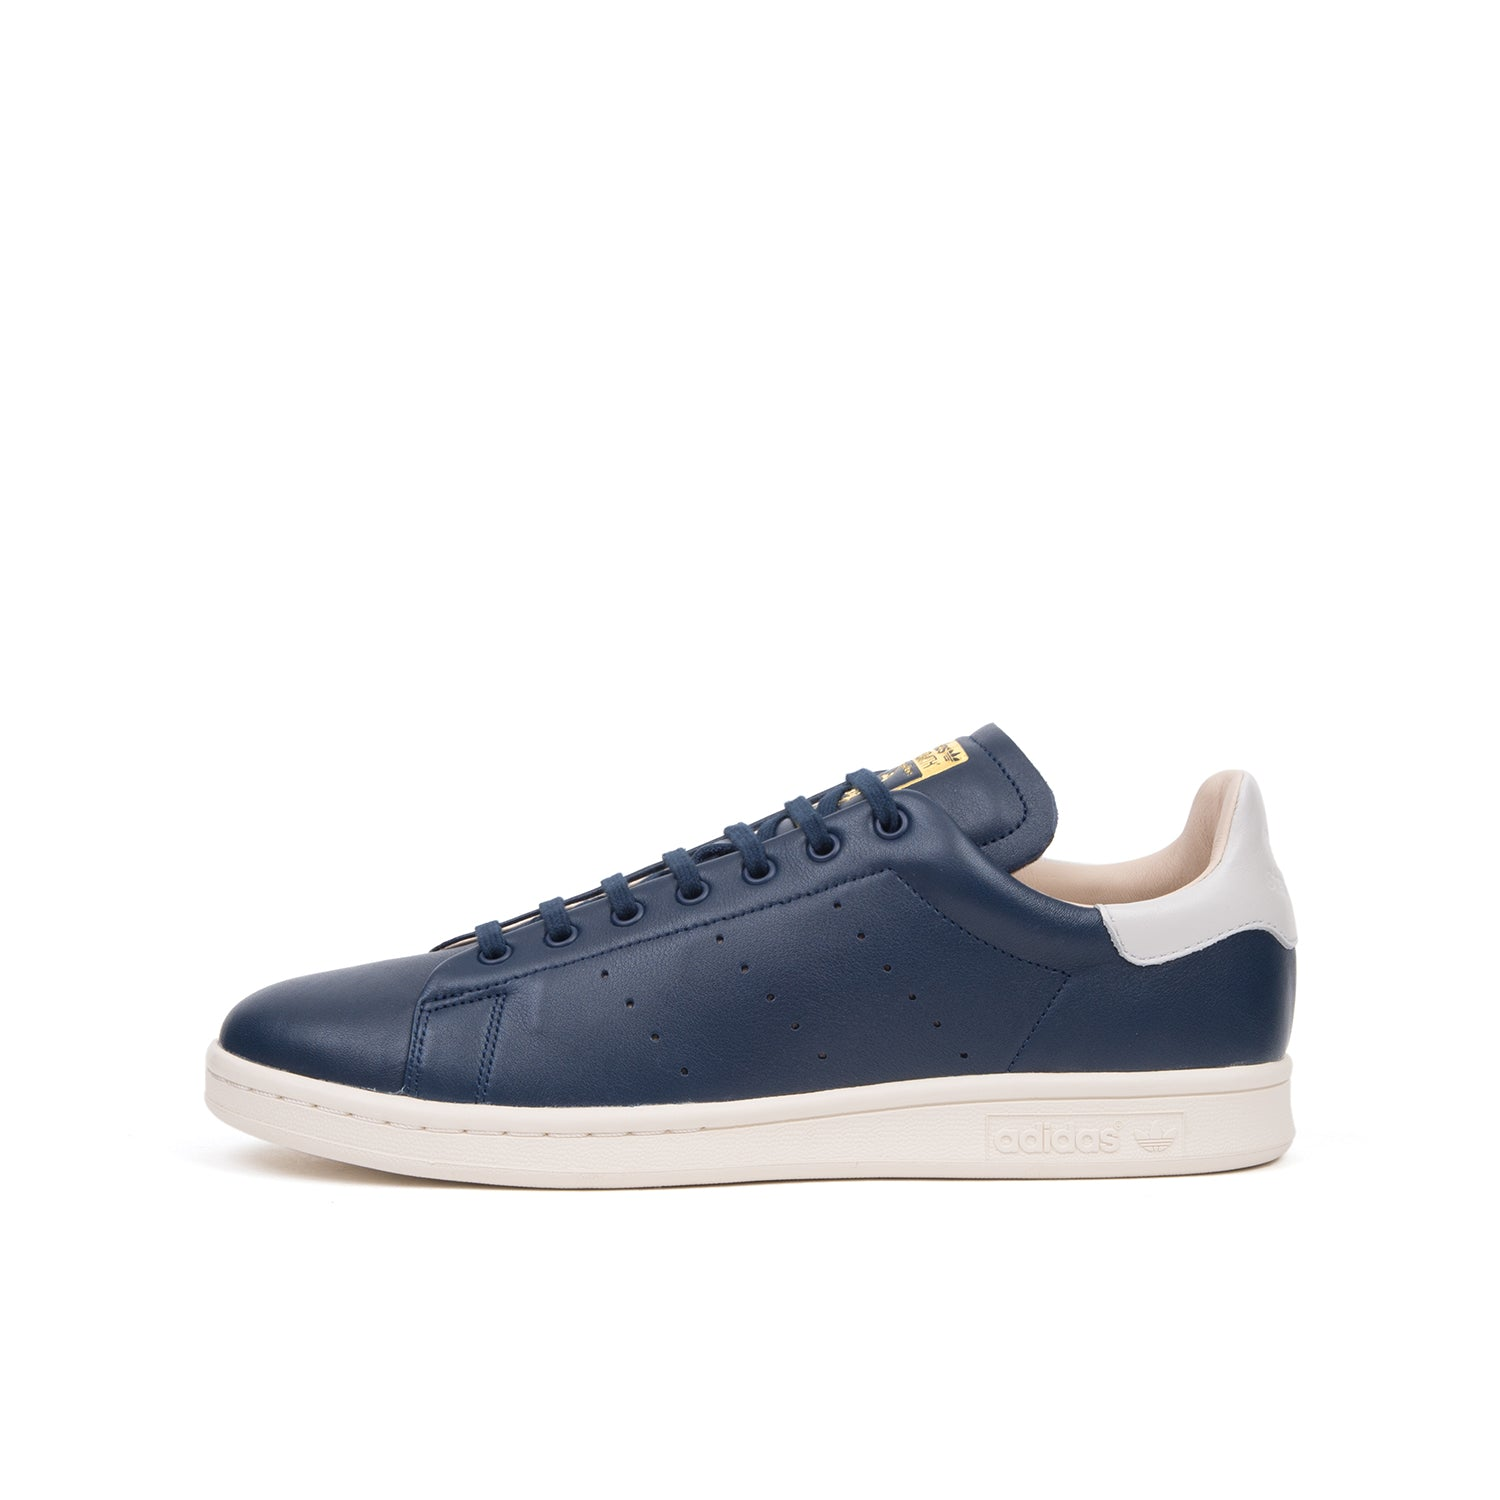 Adidas Stan Smith Schoenen | Adidas Originals Stan Smith